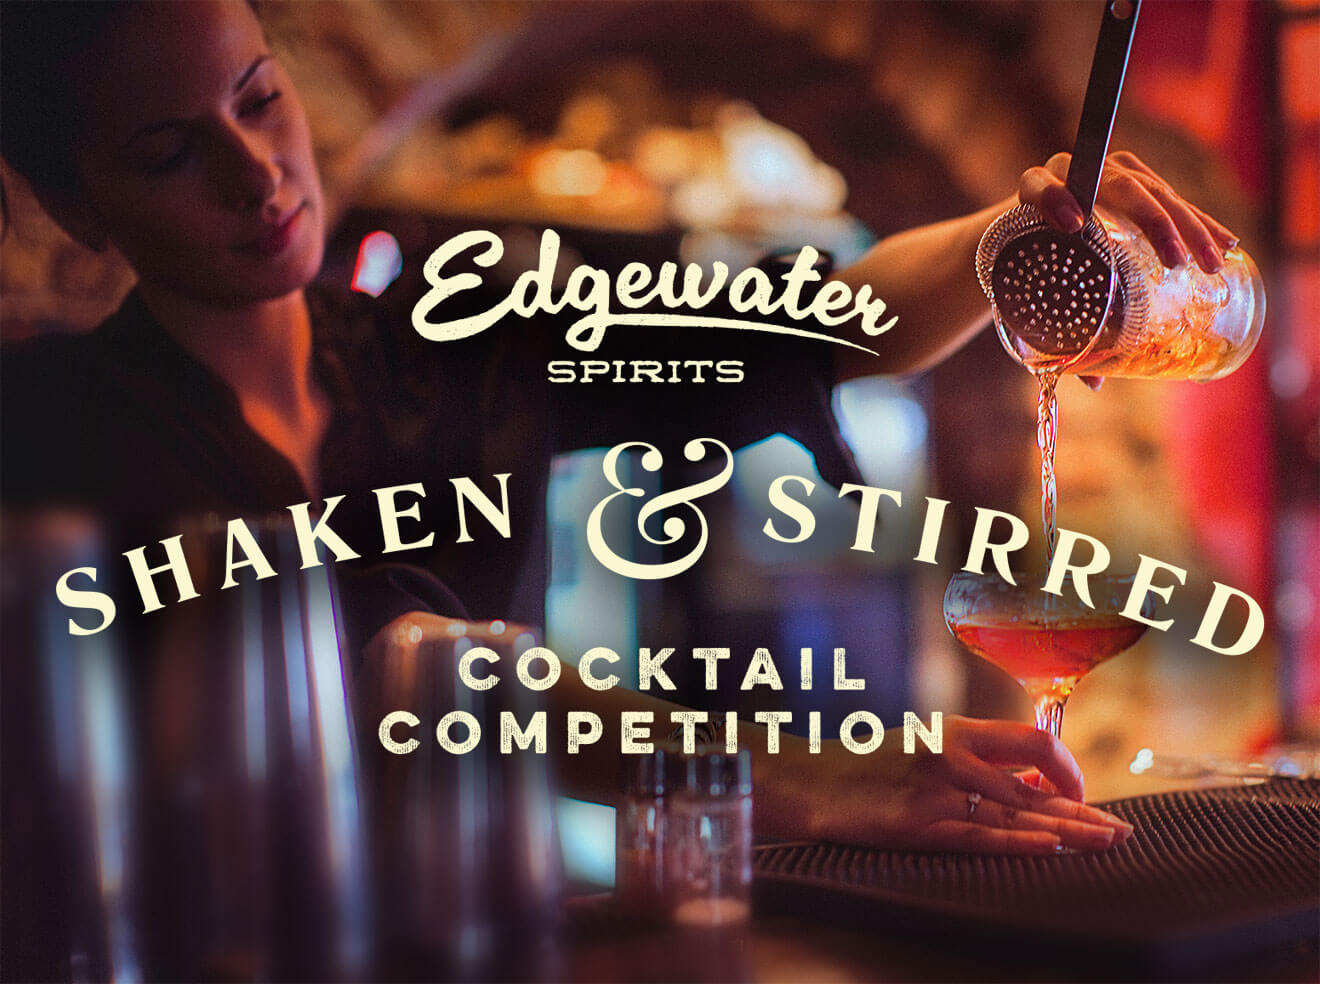 Edgewater Spirits Shaken & Stirred Cocktail Competition